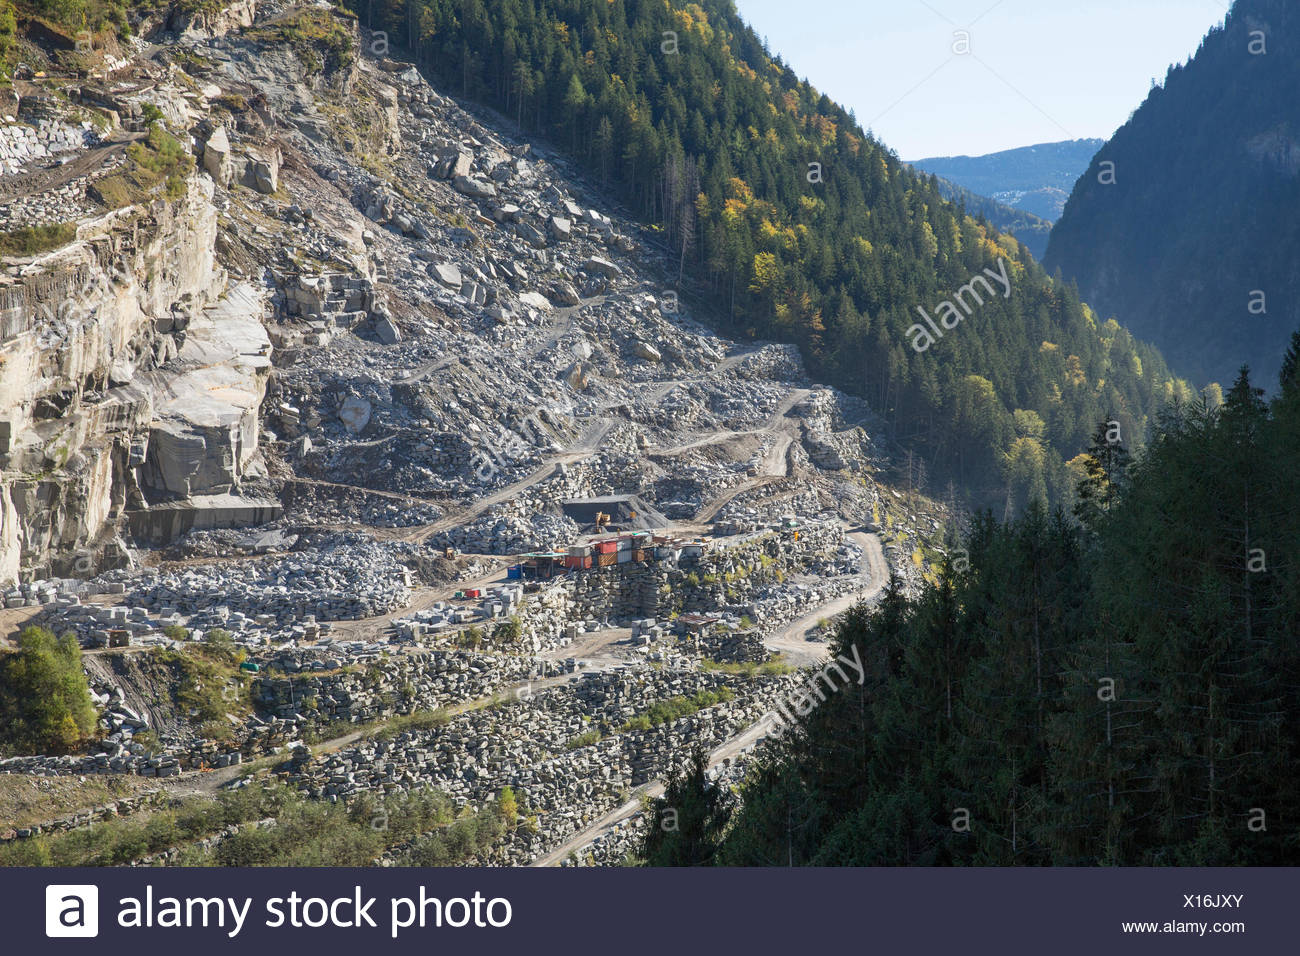 Calanca valley, stone quarry, Arvigo, Calanca valley, autumn, mountain, mountains, canton, GR, Graubünden, Grisons, cliff, rock, - Stock Image